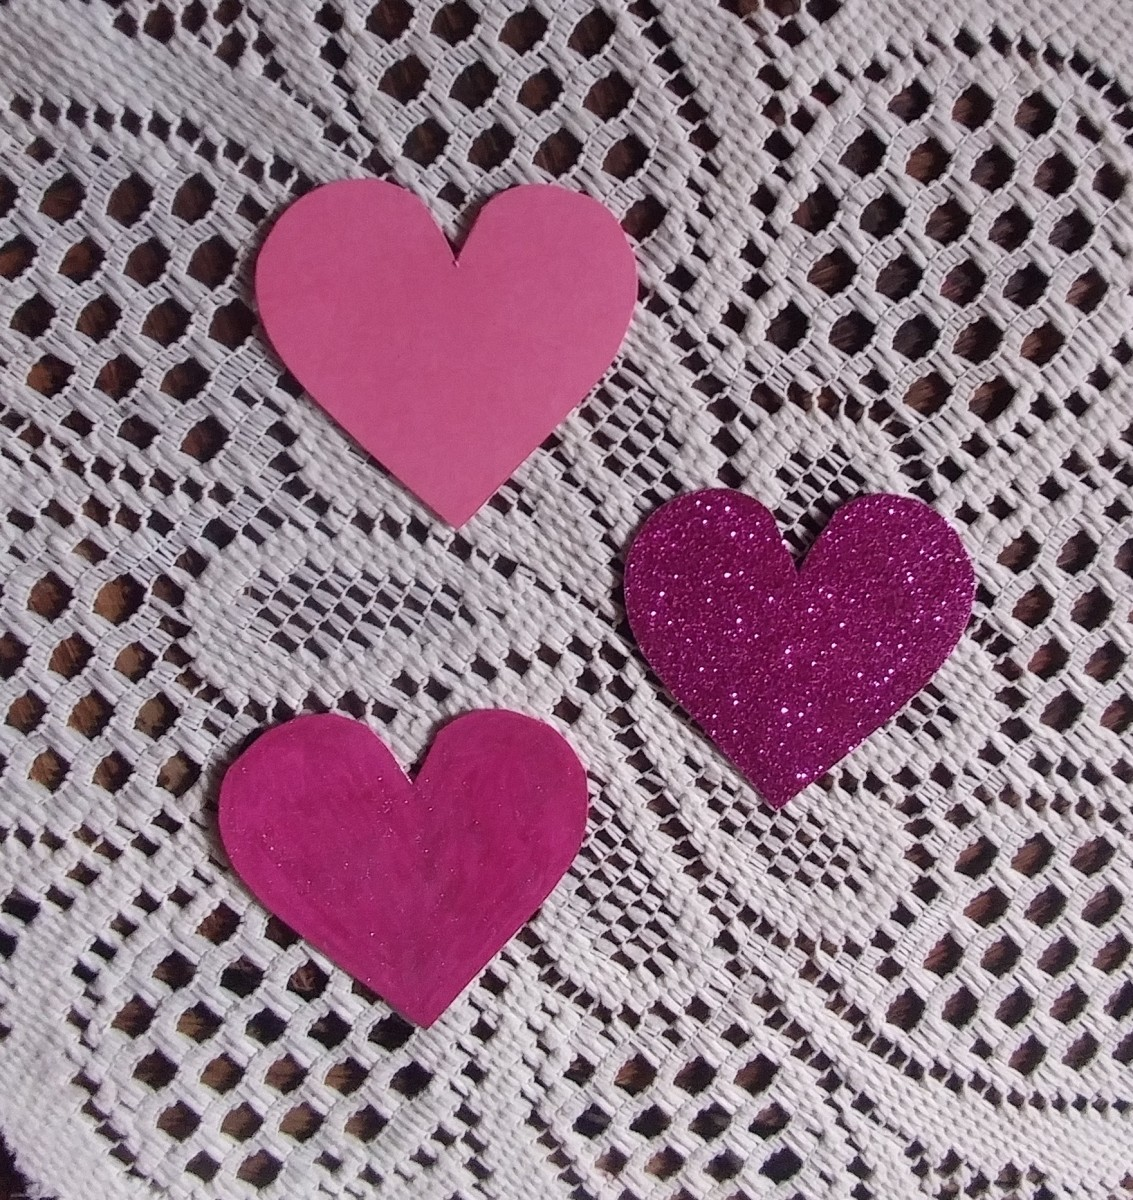 Cut hearts out of pink or red paper.